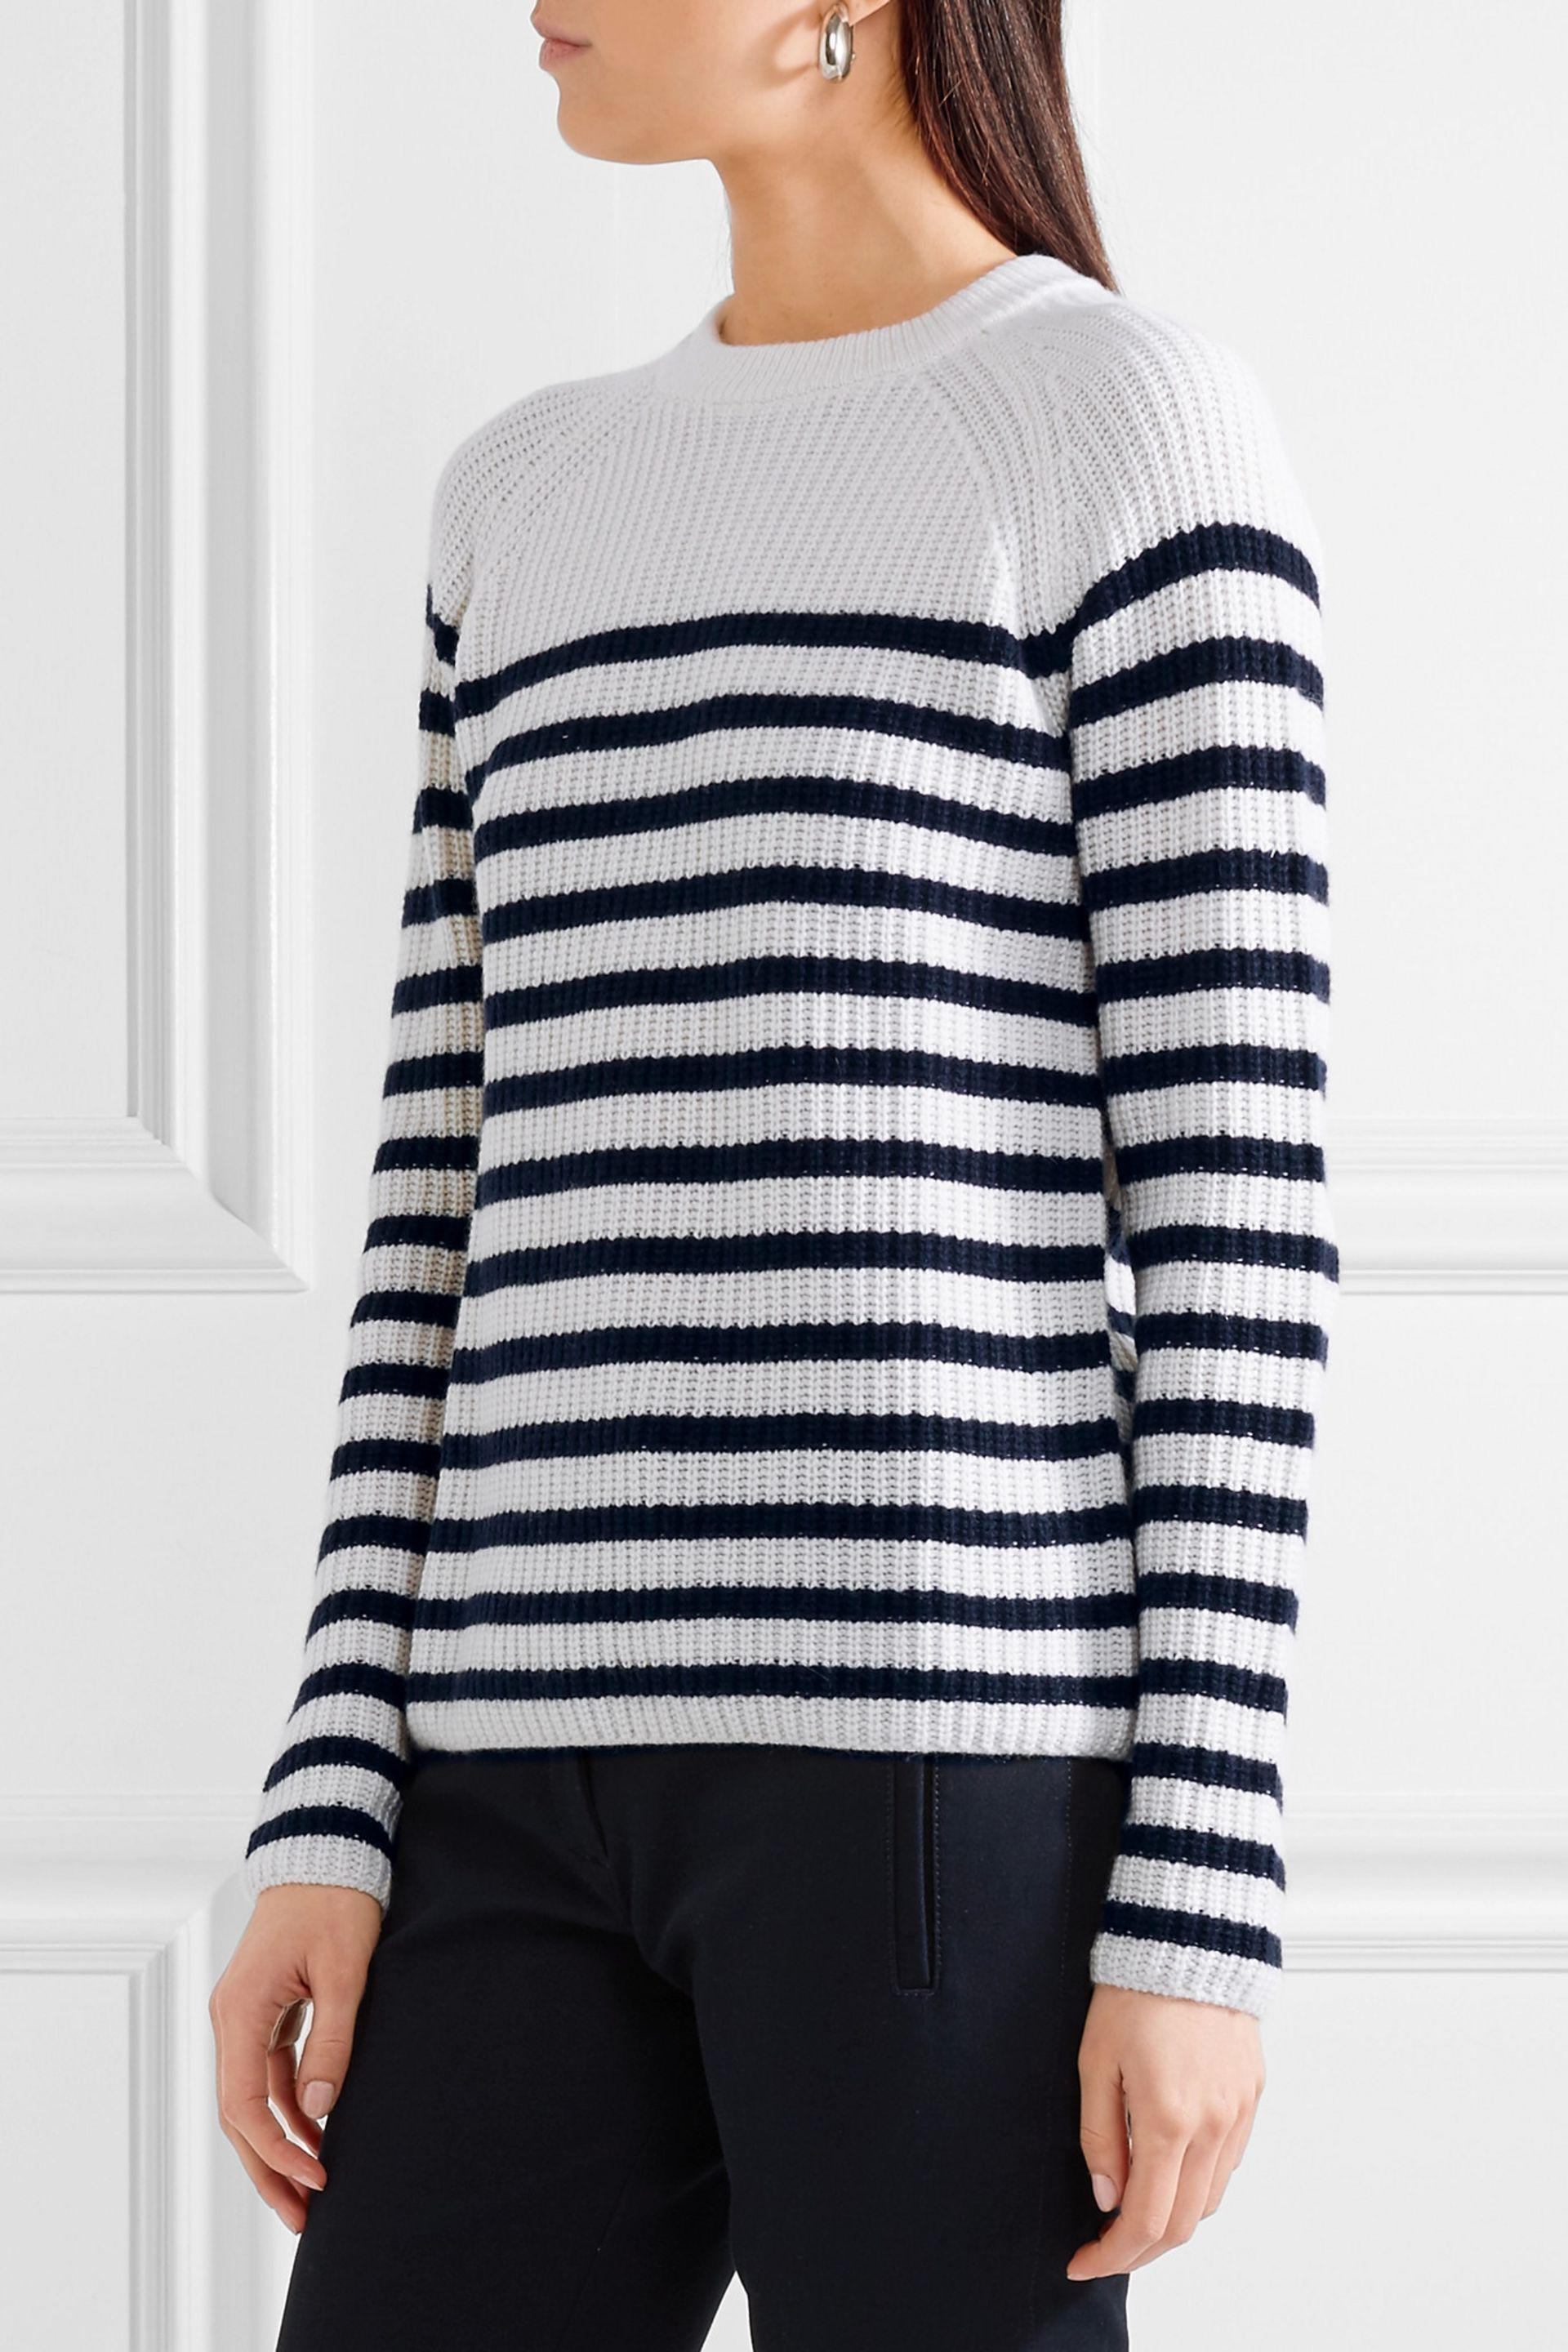 Buy Cheap Supply Striped cashmere sweater Joseph Clearance Fashionable Hot Sale Low Price Online Visit Online jXZ6CDr